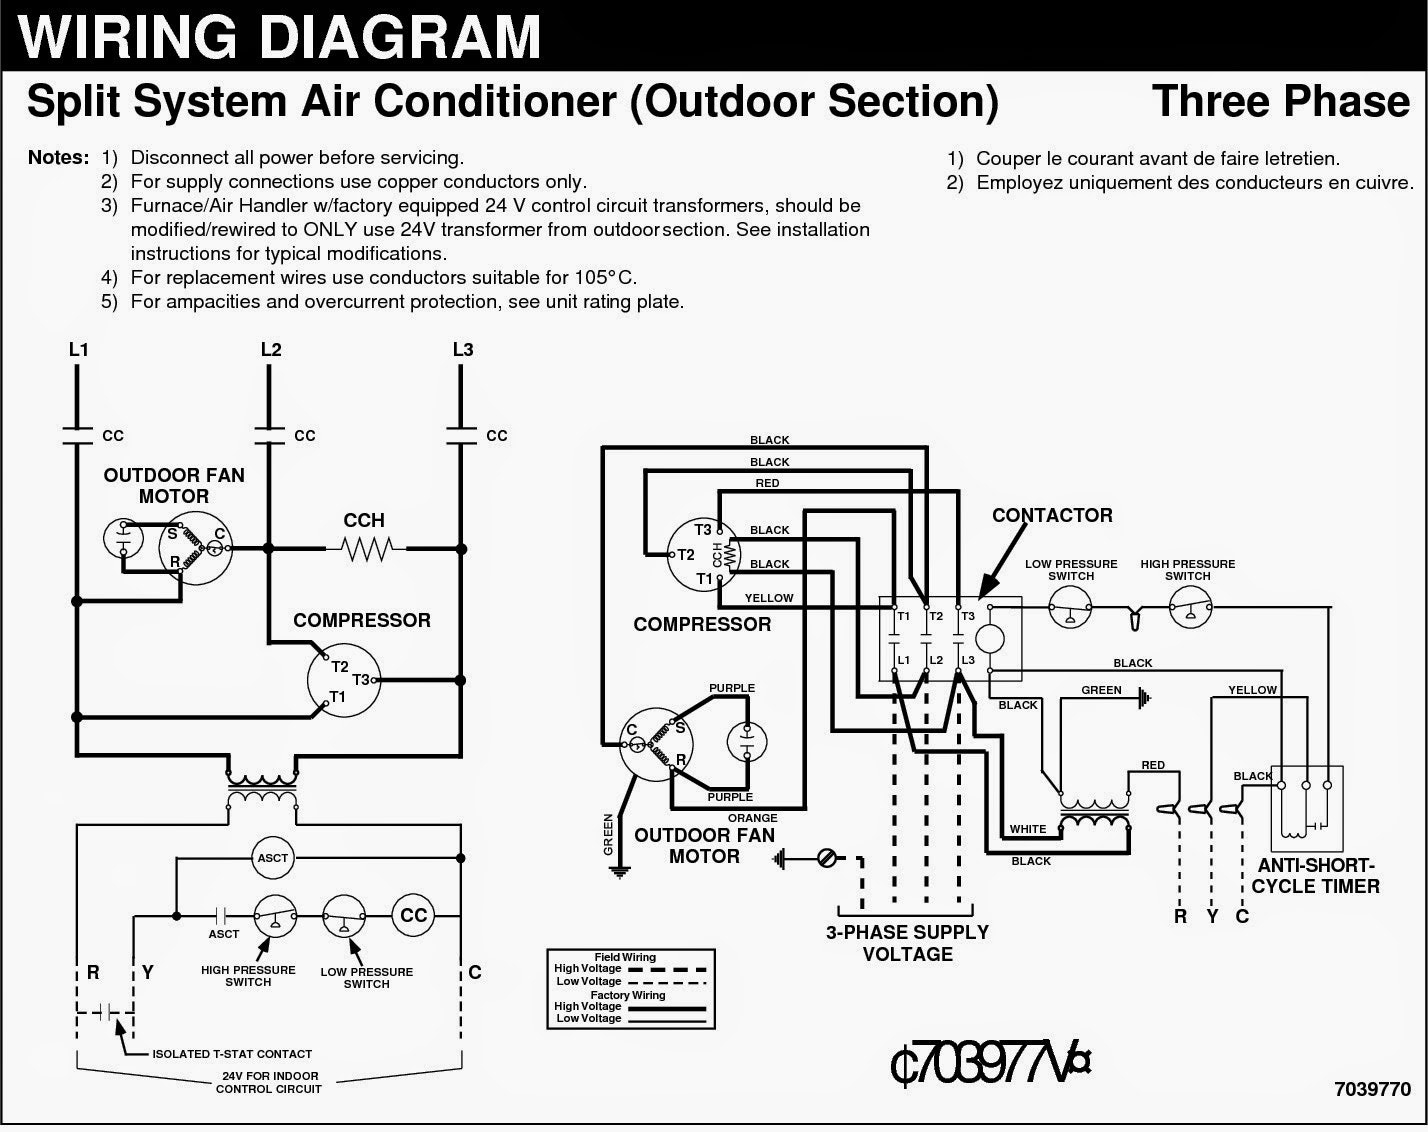 Wiring Diagram For Aircon   Wiring Library - Air Conditioner Wiring Diagram Pdf